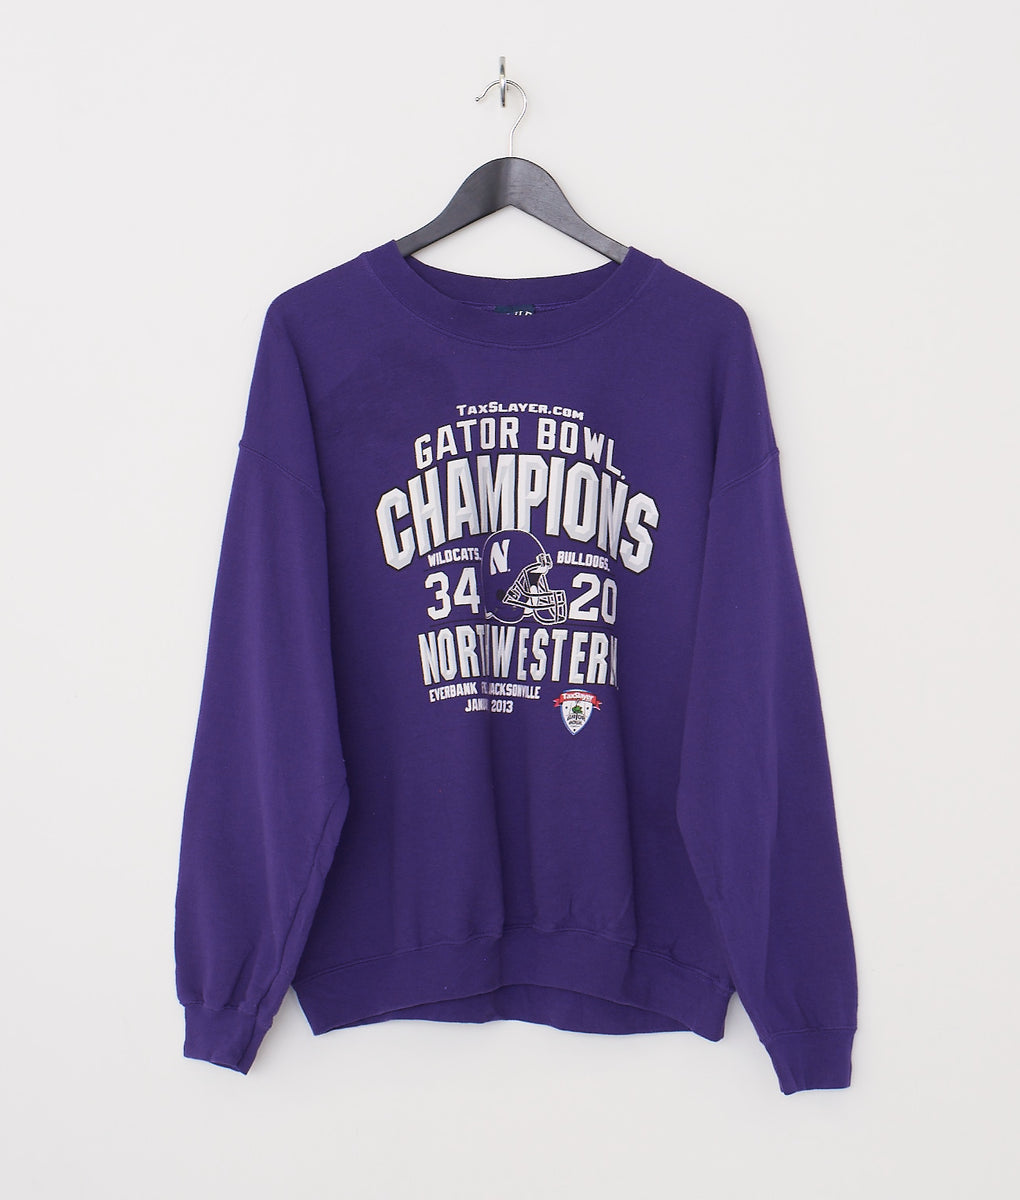 Gator Bowl Champions Sweat (L)